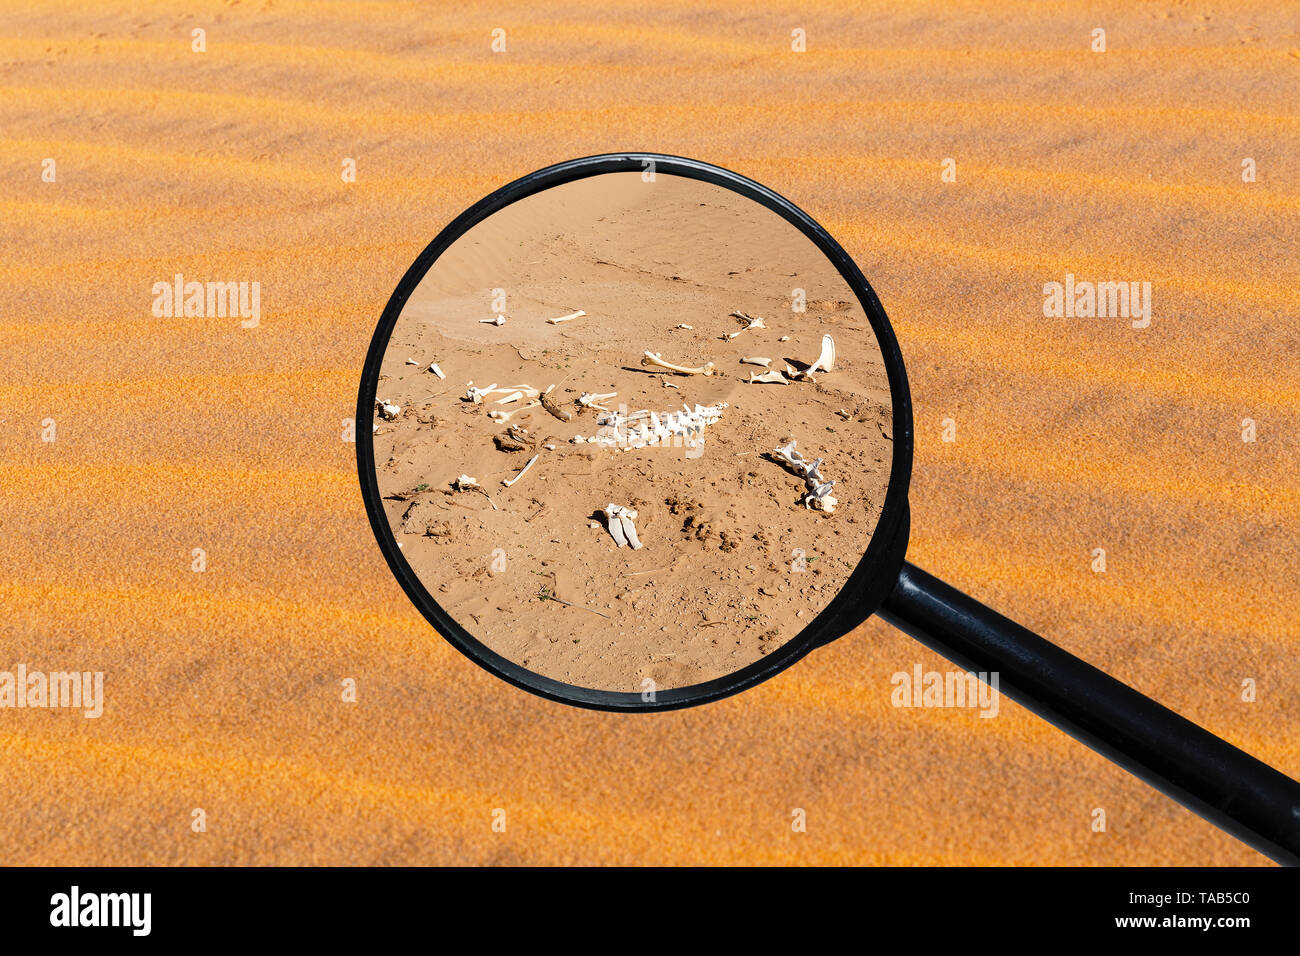 bones of an animal in the desert, view through a magnifying glass against the background of sand Stock Photo